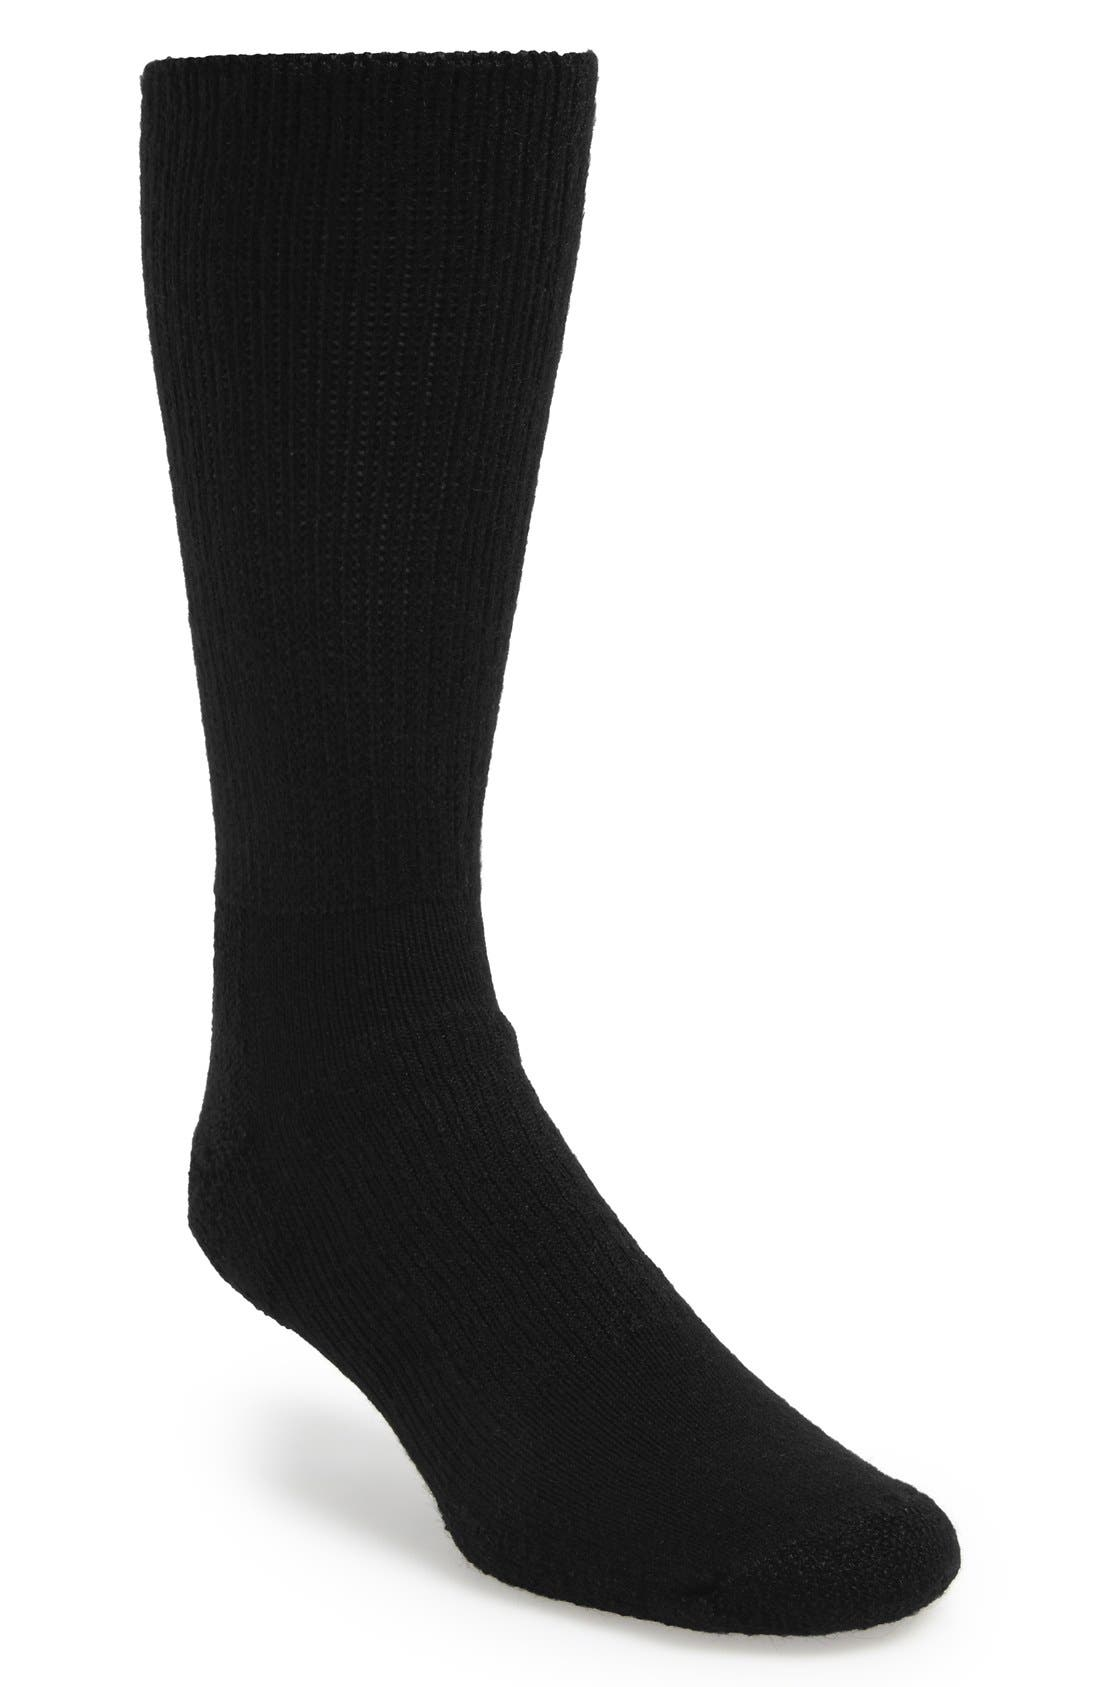 Main Image - Thorlo 'Classic' Crew Walking Socks (Men)